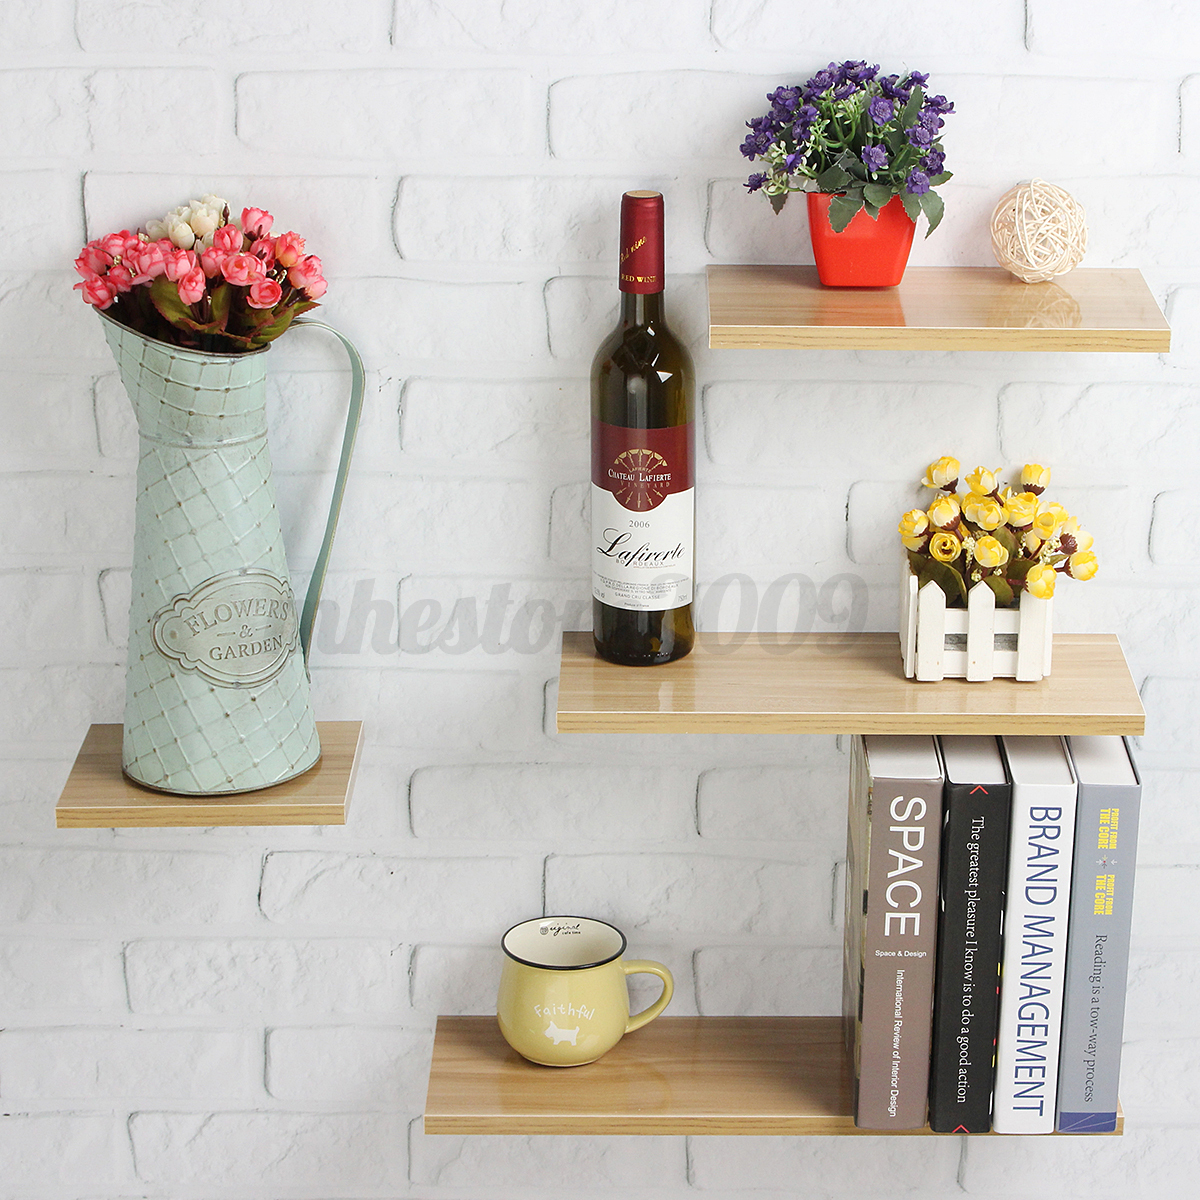 Contemporary Wall Shelves Decorative: Wood Floating Display Ledge Shelves Set Of 4 Wall Mount Shelf Modern Home Decor